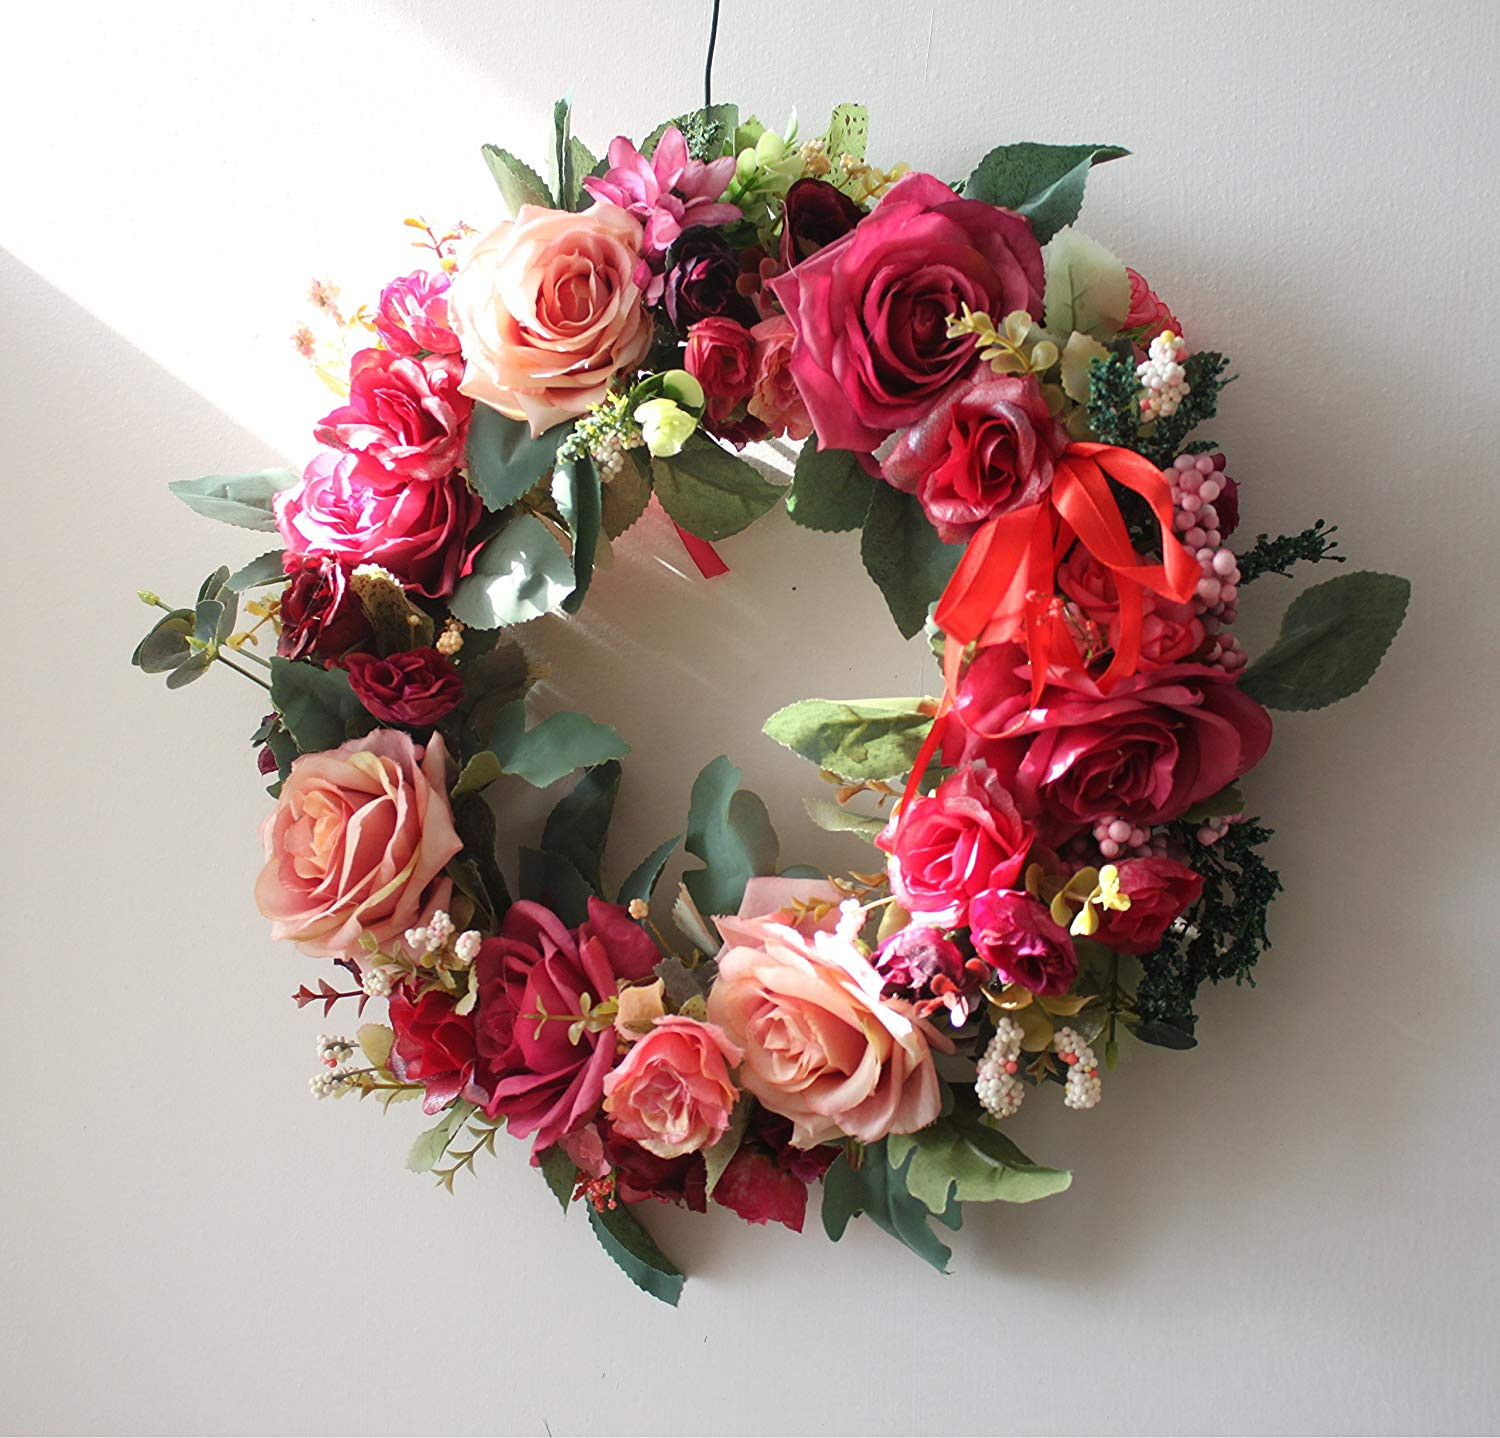 Amazon Artificial Flower Wreath Home Wedding Door Decoration Taffy Home & Kitchen